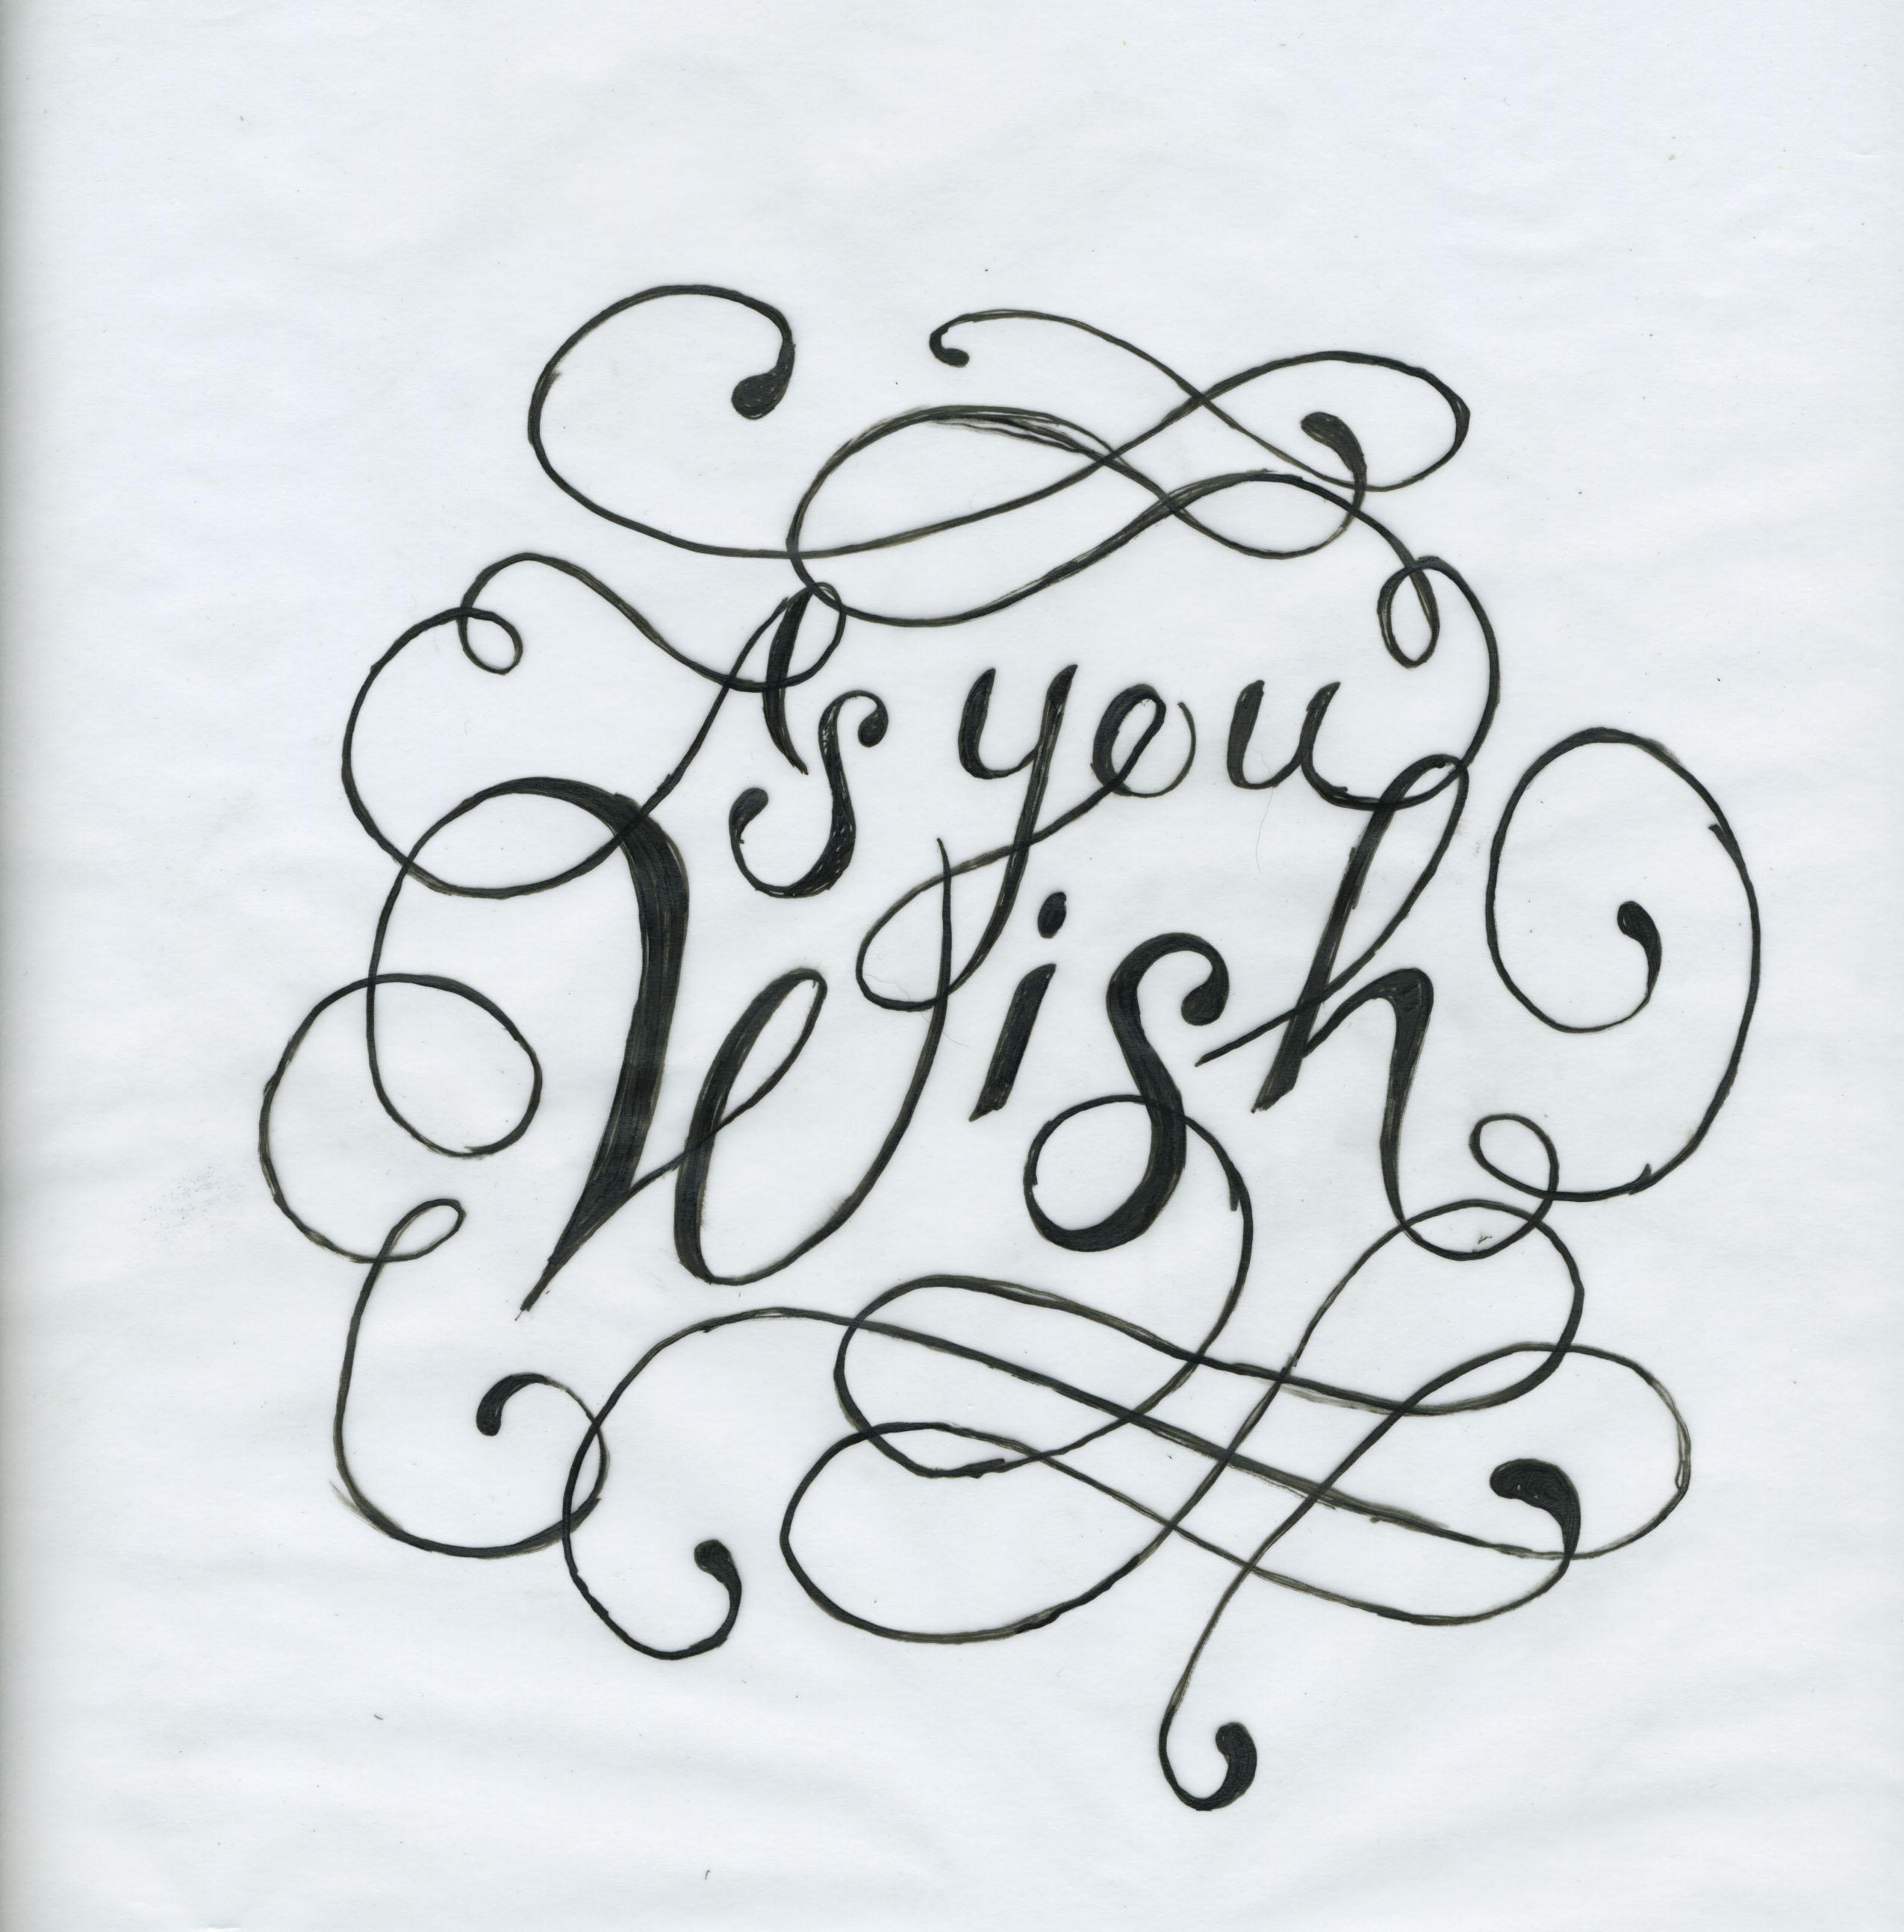 As you wish... - image 1 - student project